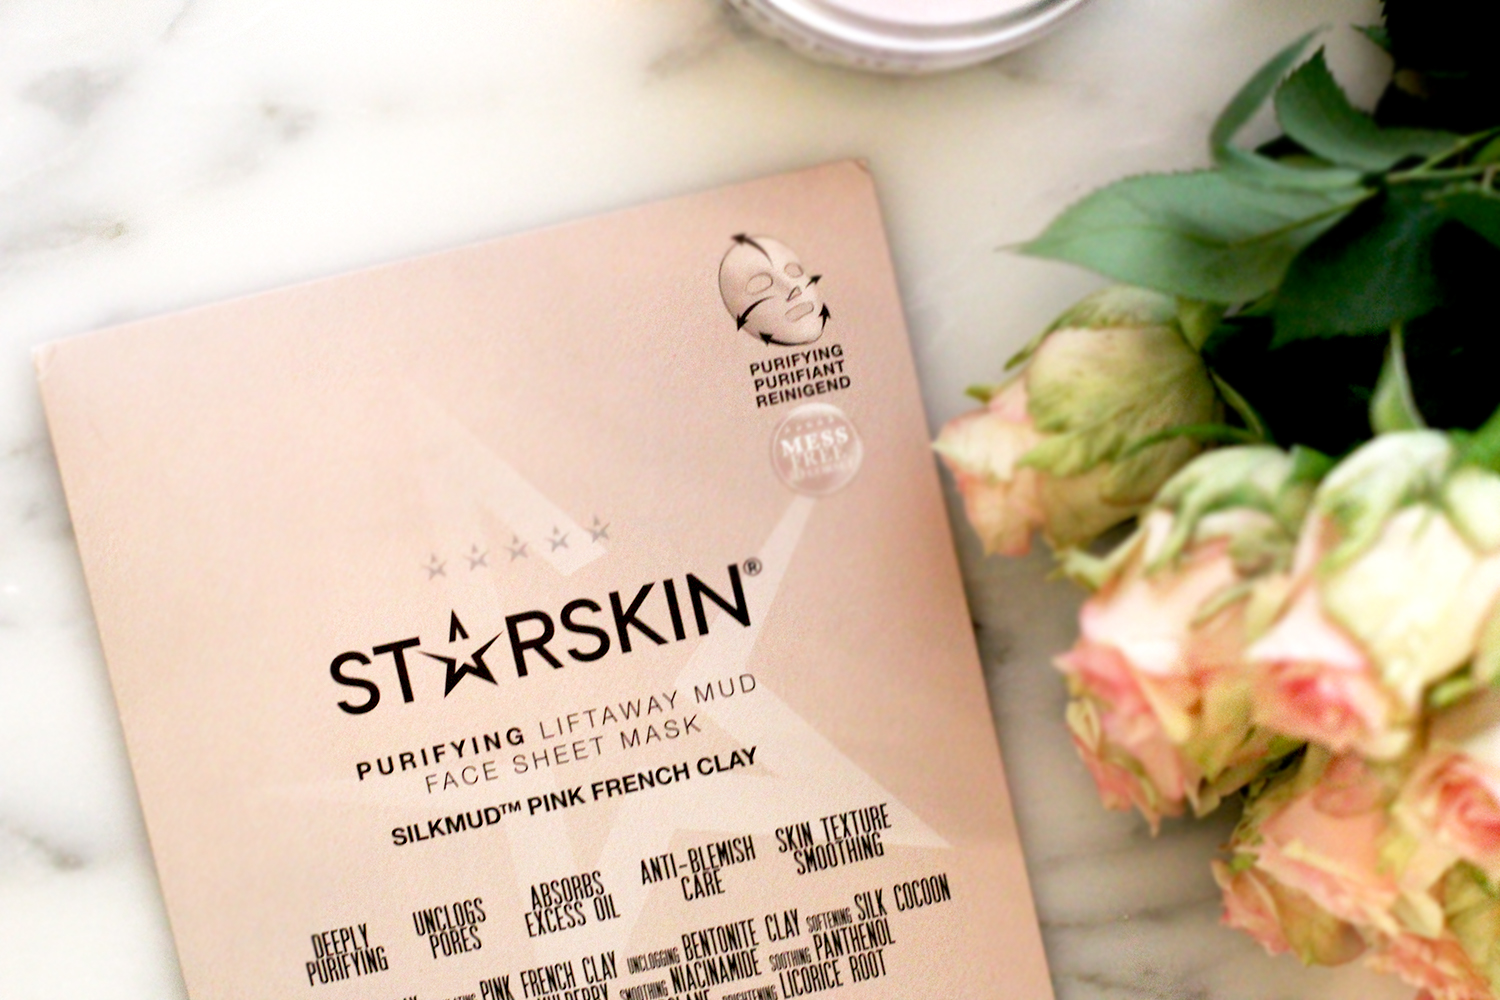 starskin beauty mud sheet mask silkmud